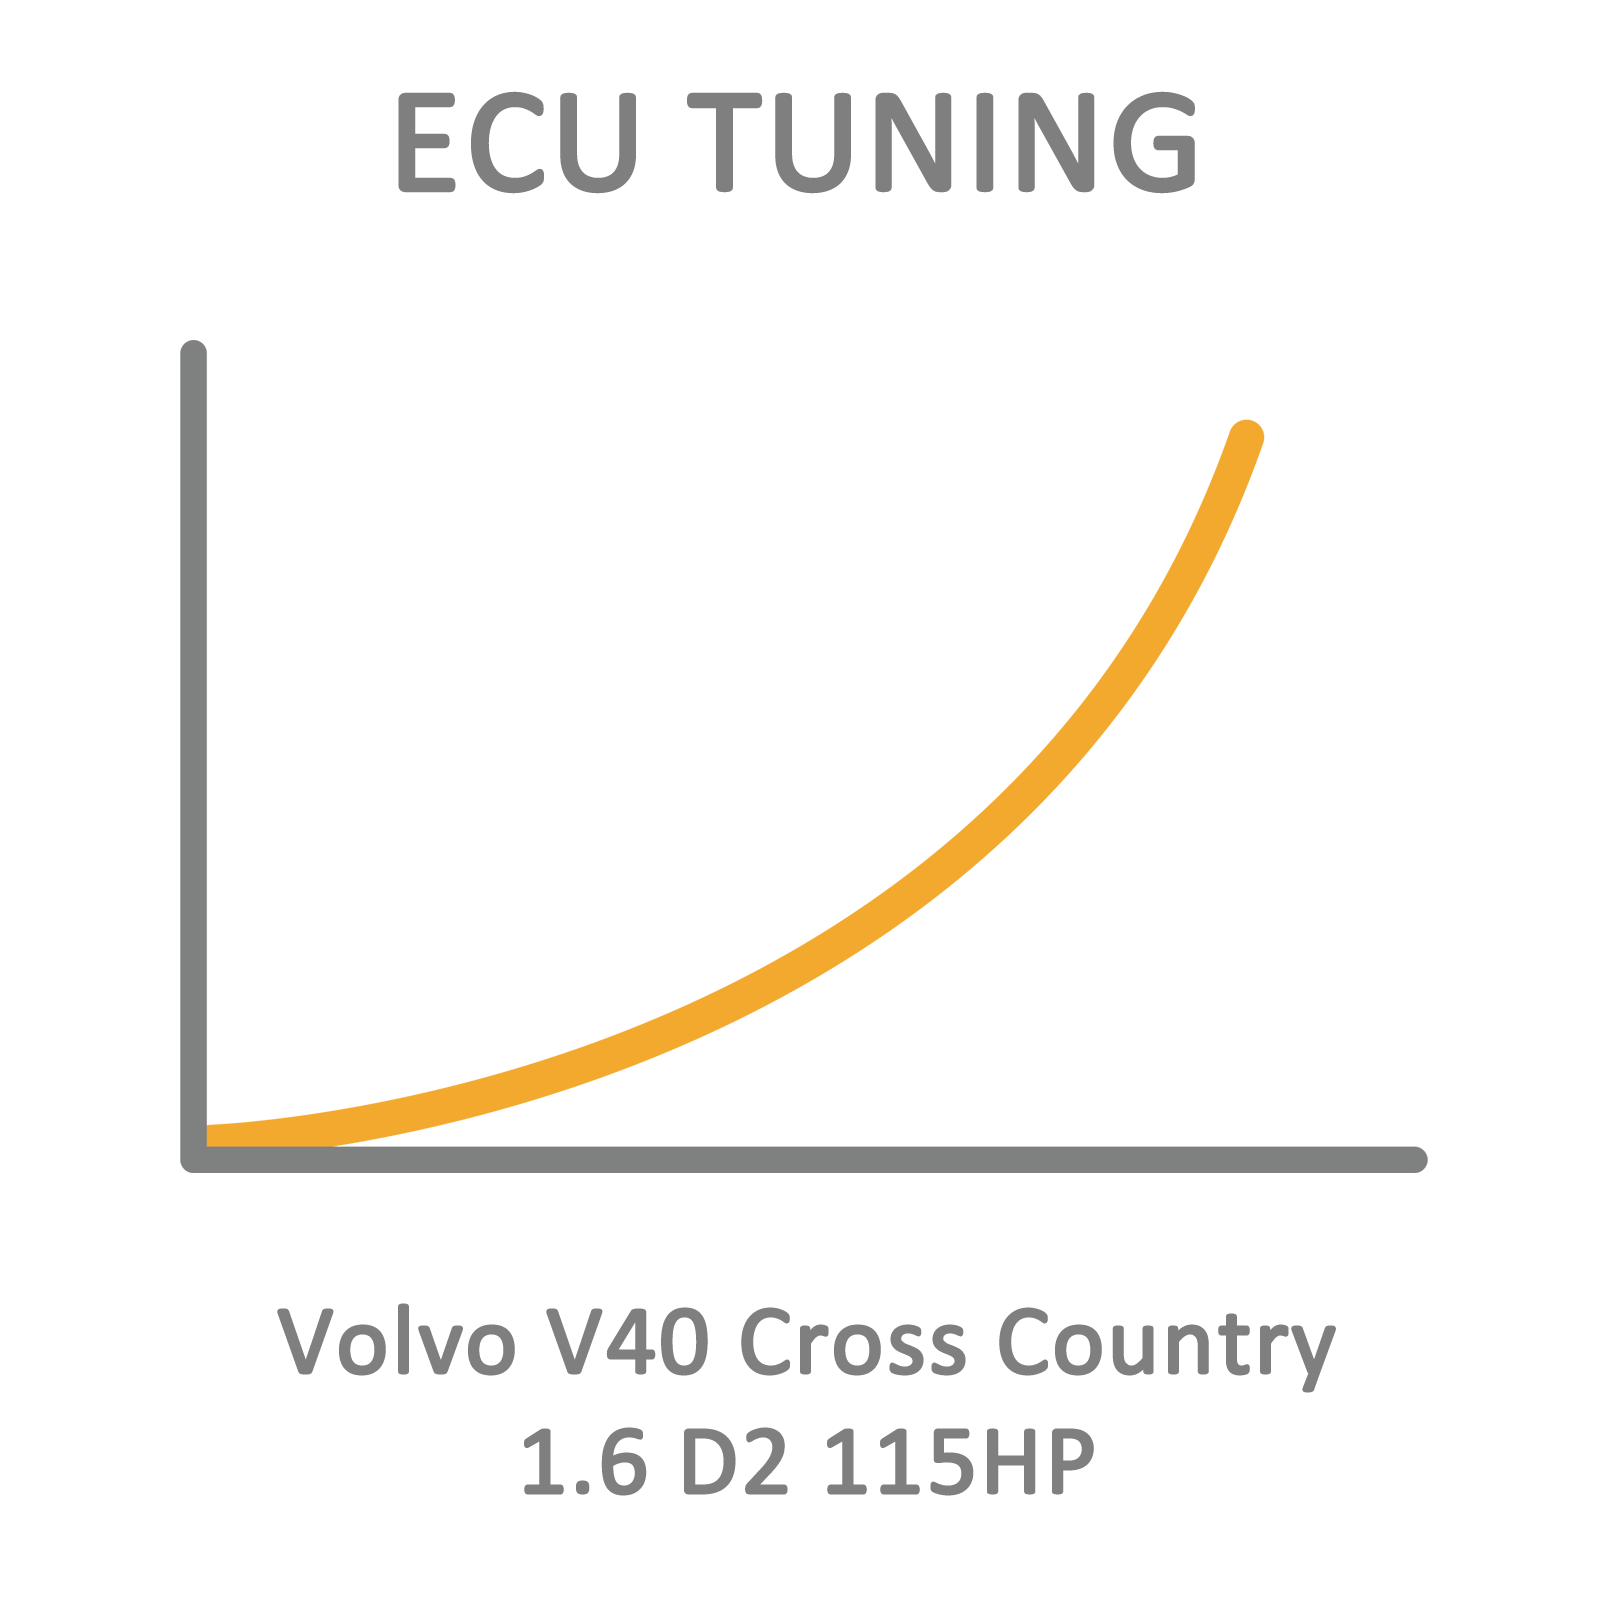 Volvo V40 Cross Country 1.6 D2 115HP ECU Tuning Remapping